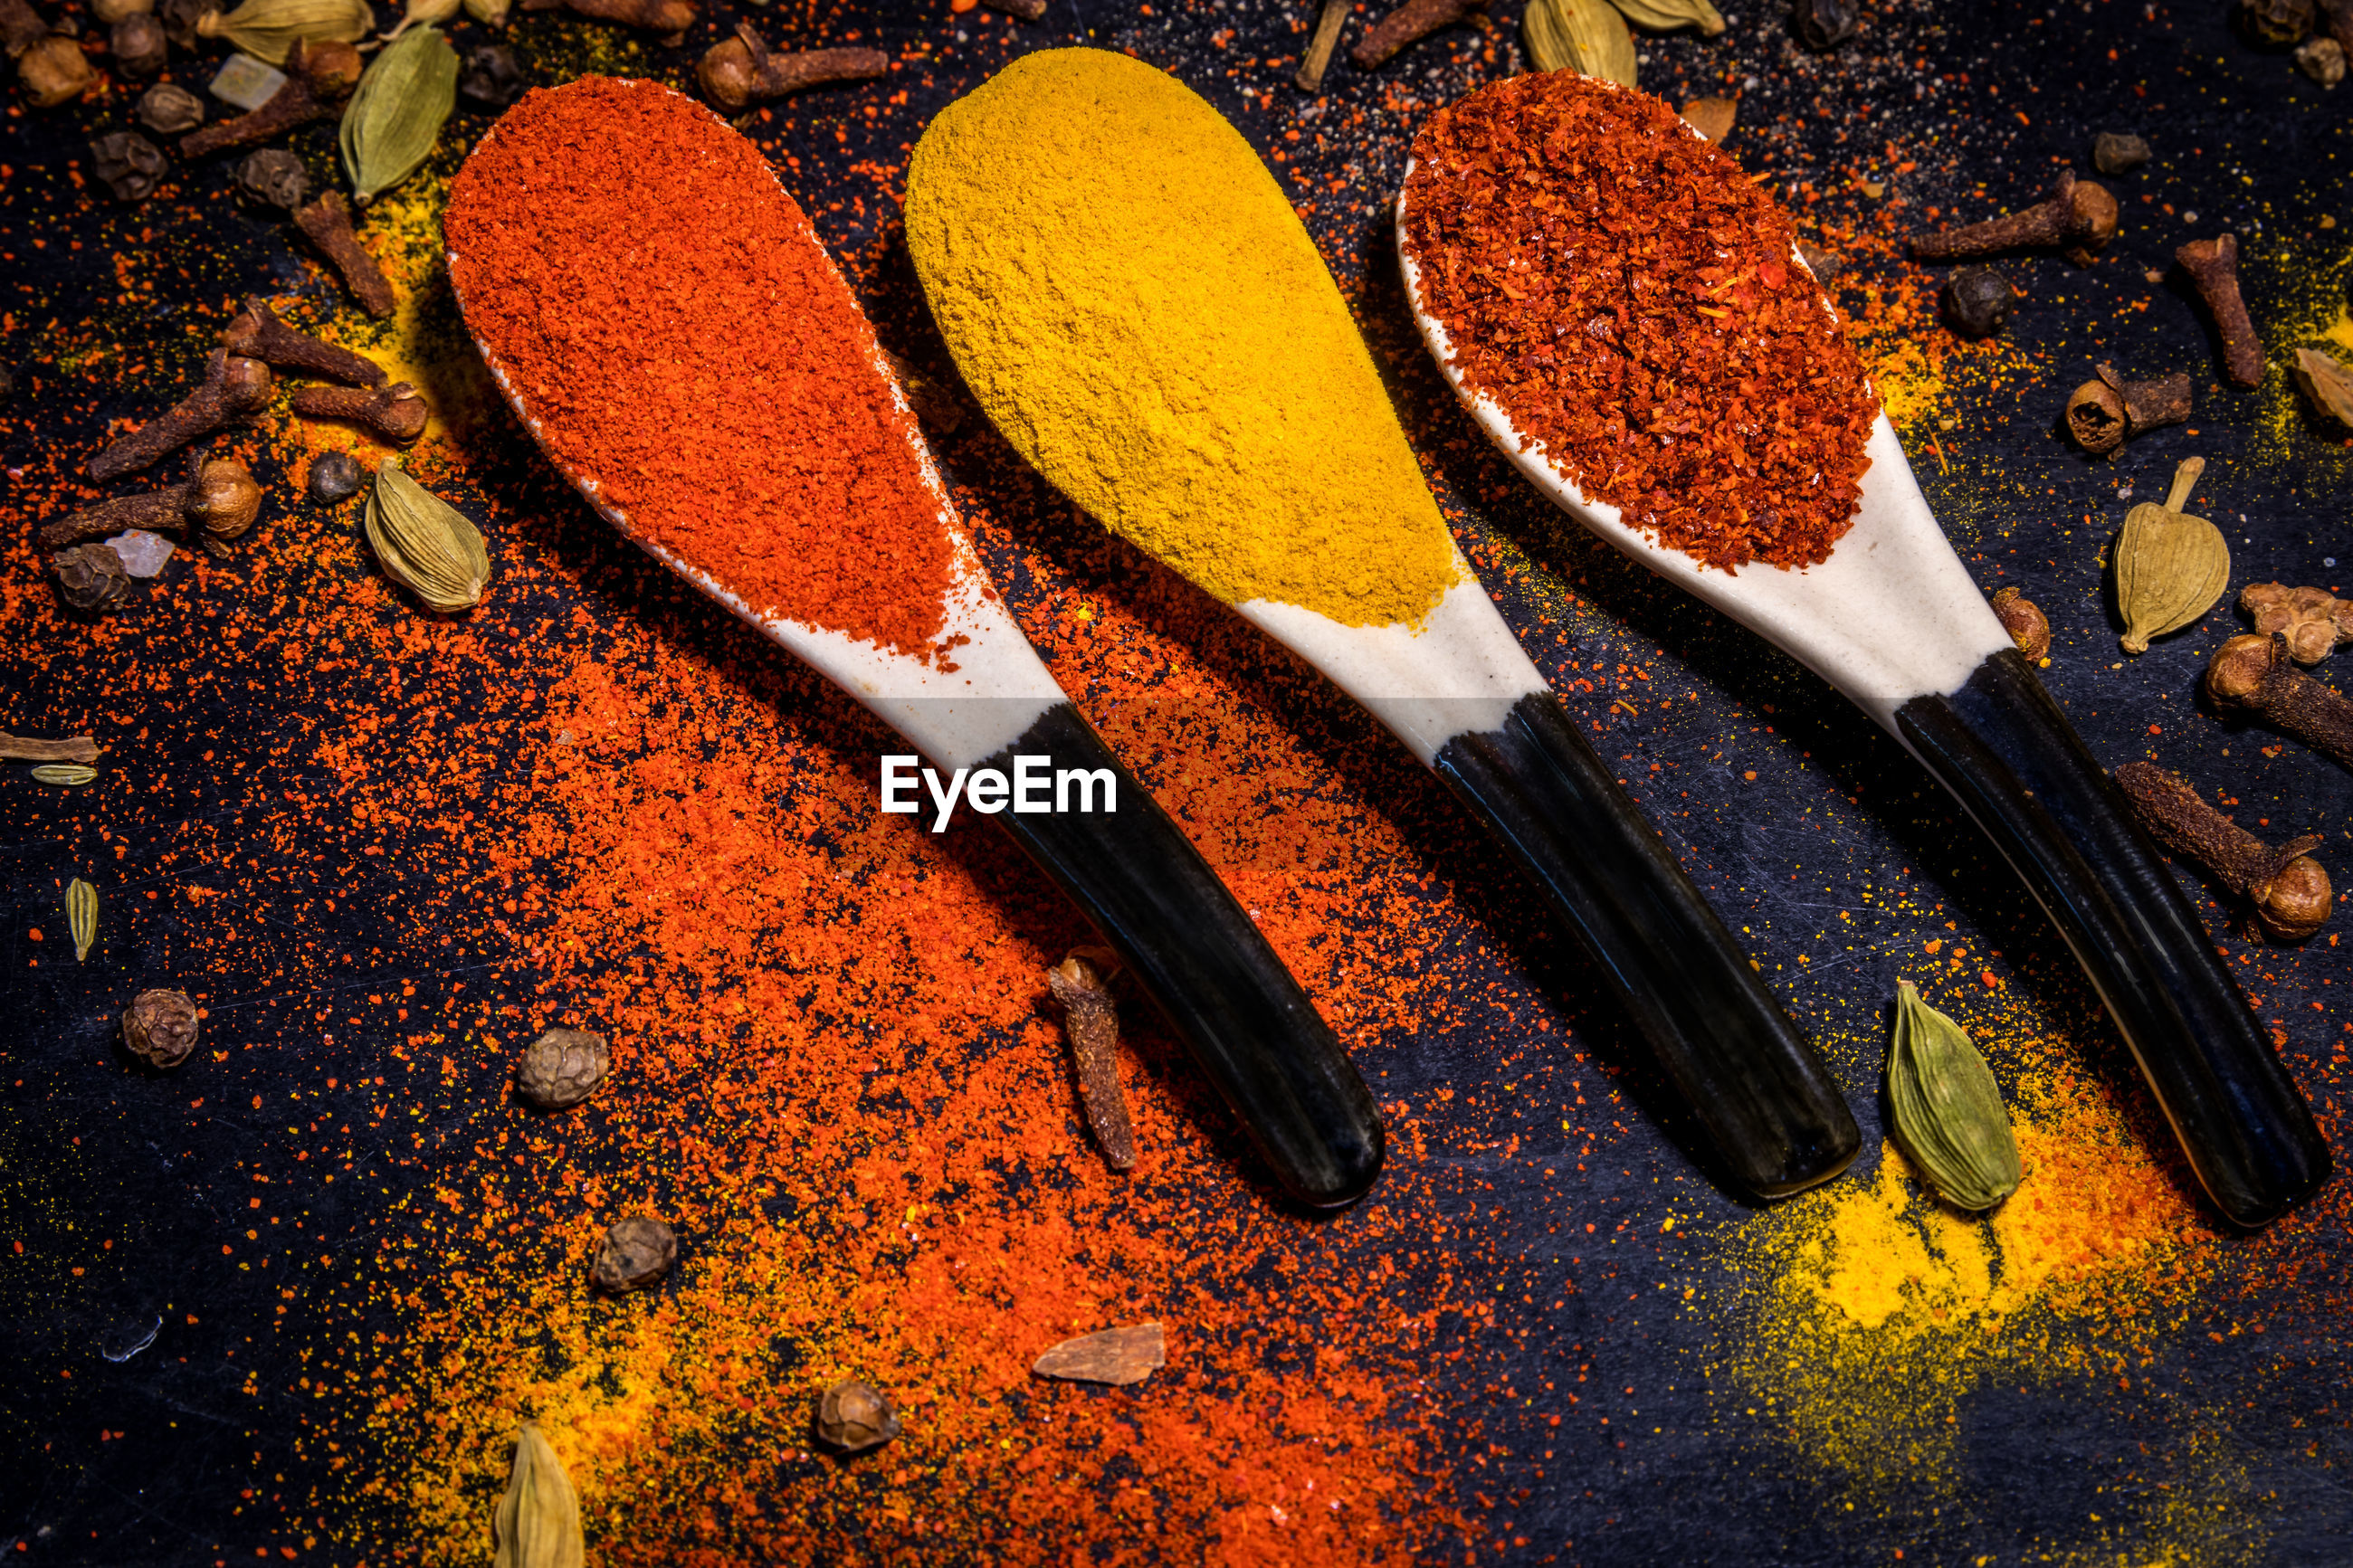 High angle view of spices on table